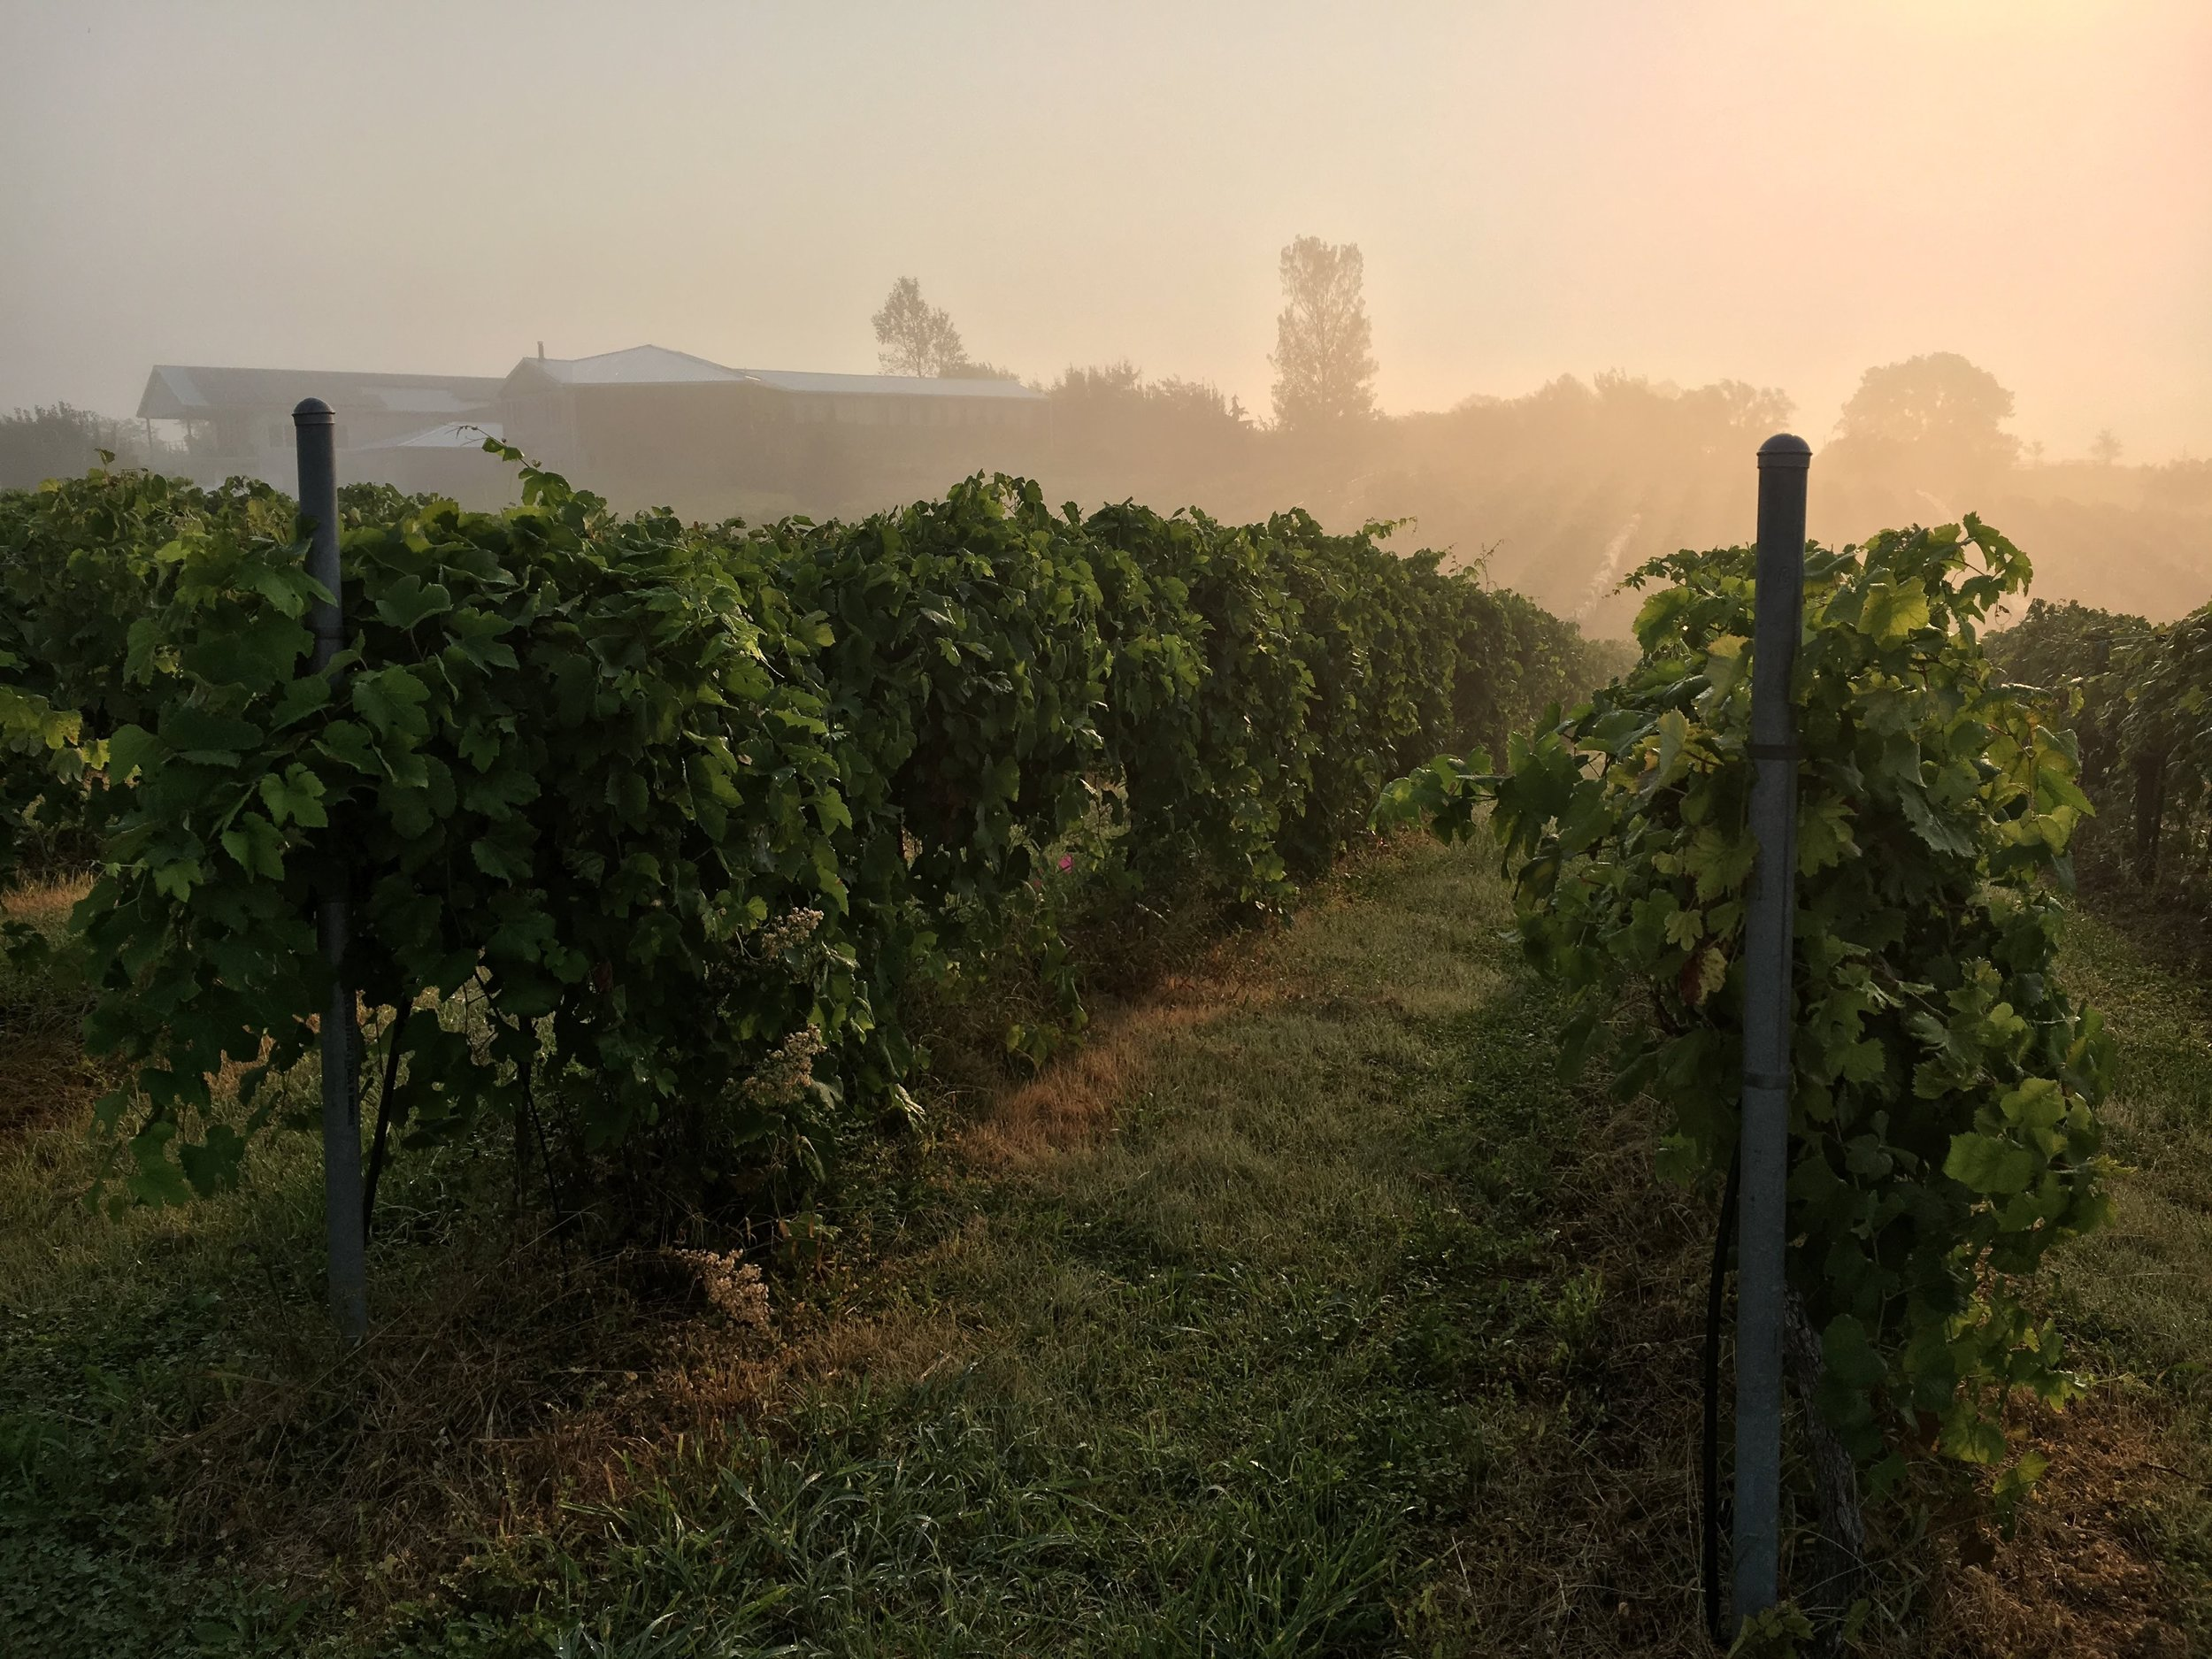 Our Vineyard - A home for American Heritage Grapes